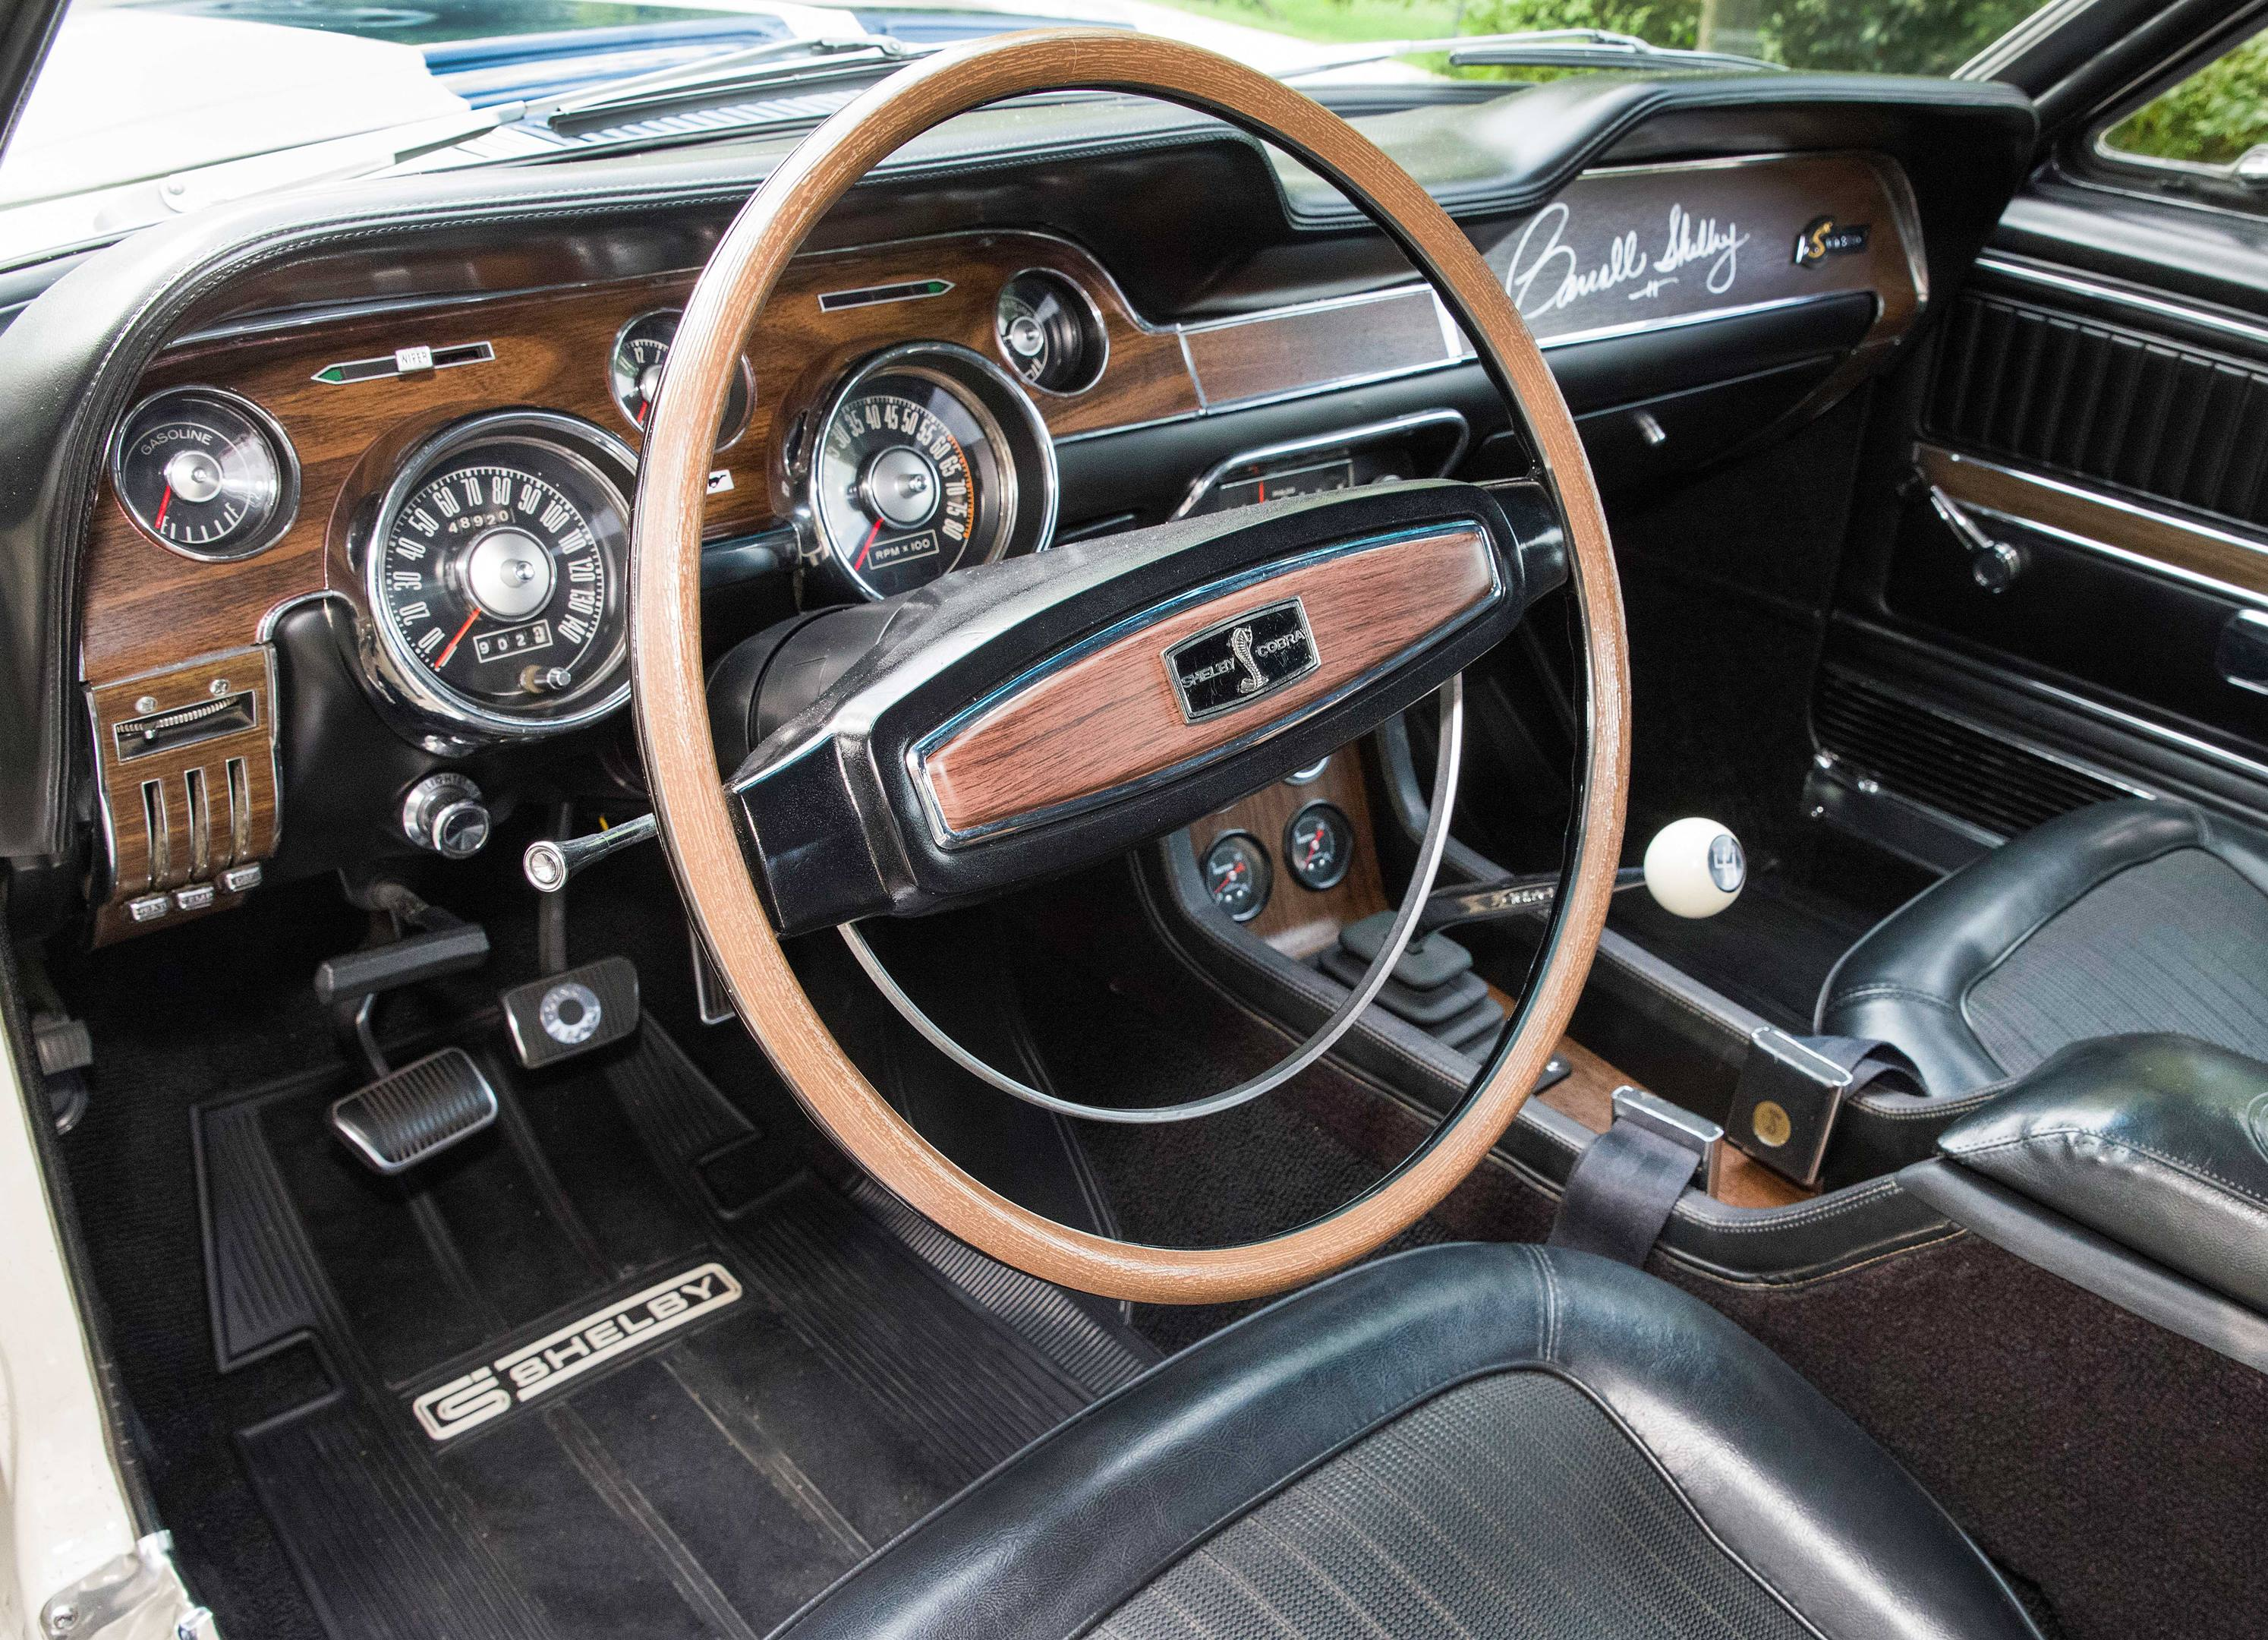 The car is correct inside, with the factory gauges and Shelby Cobra steering wheel.